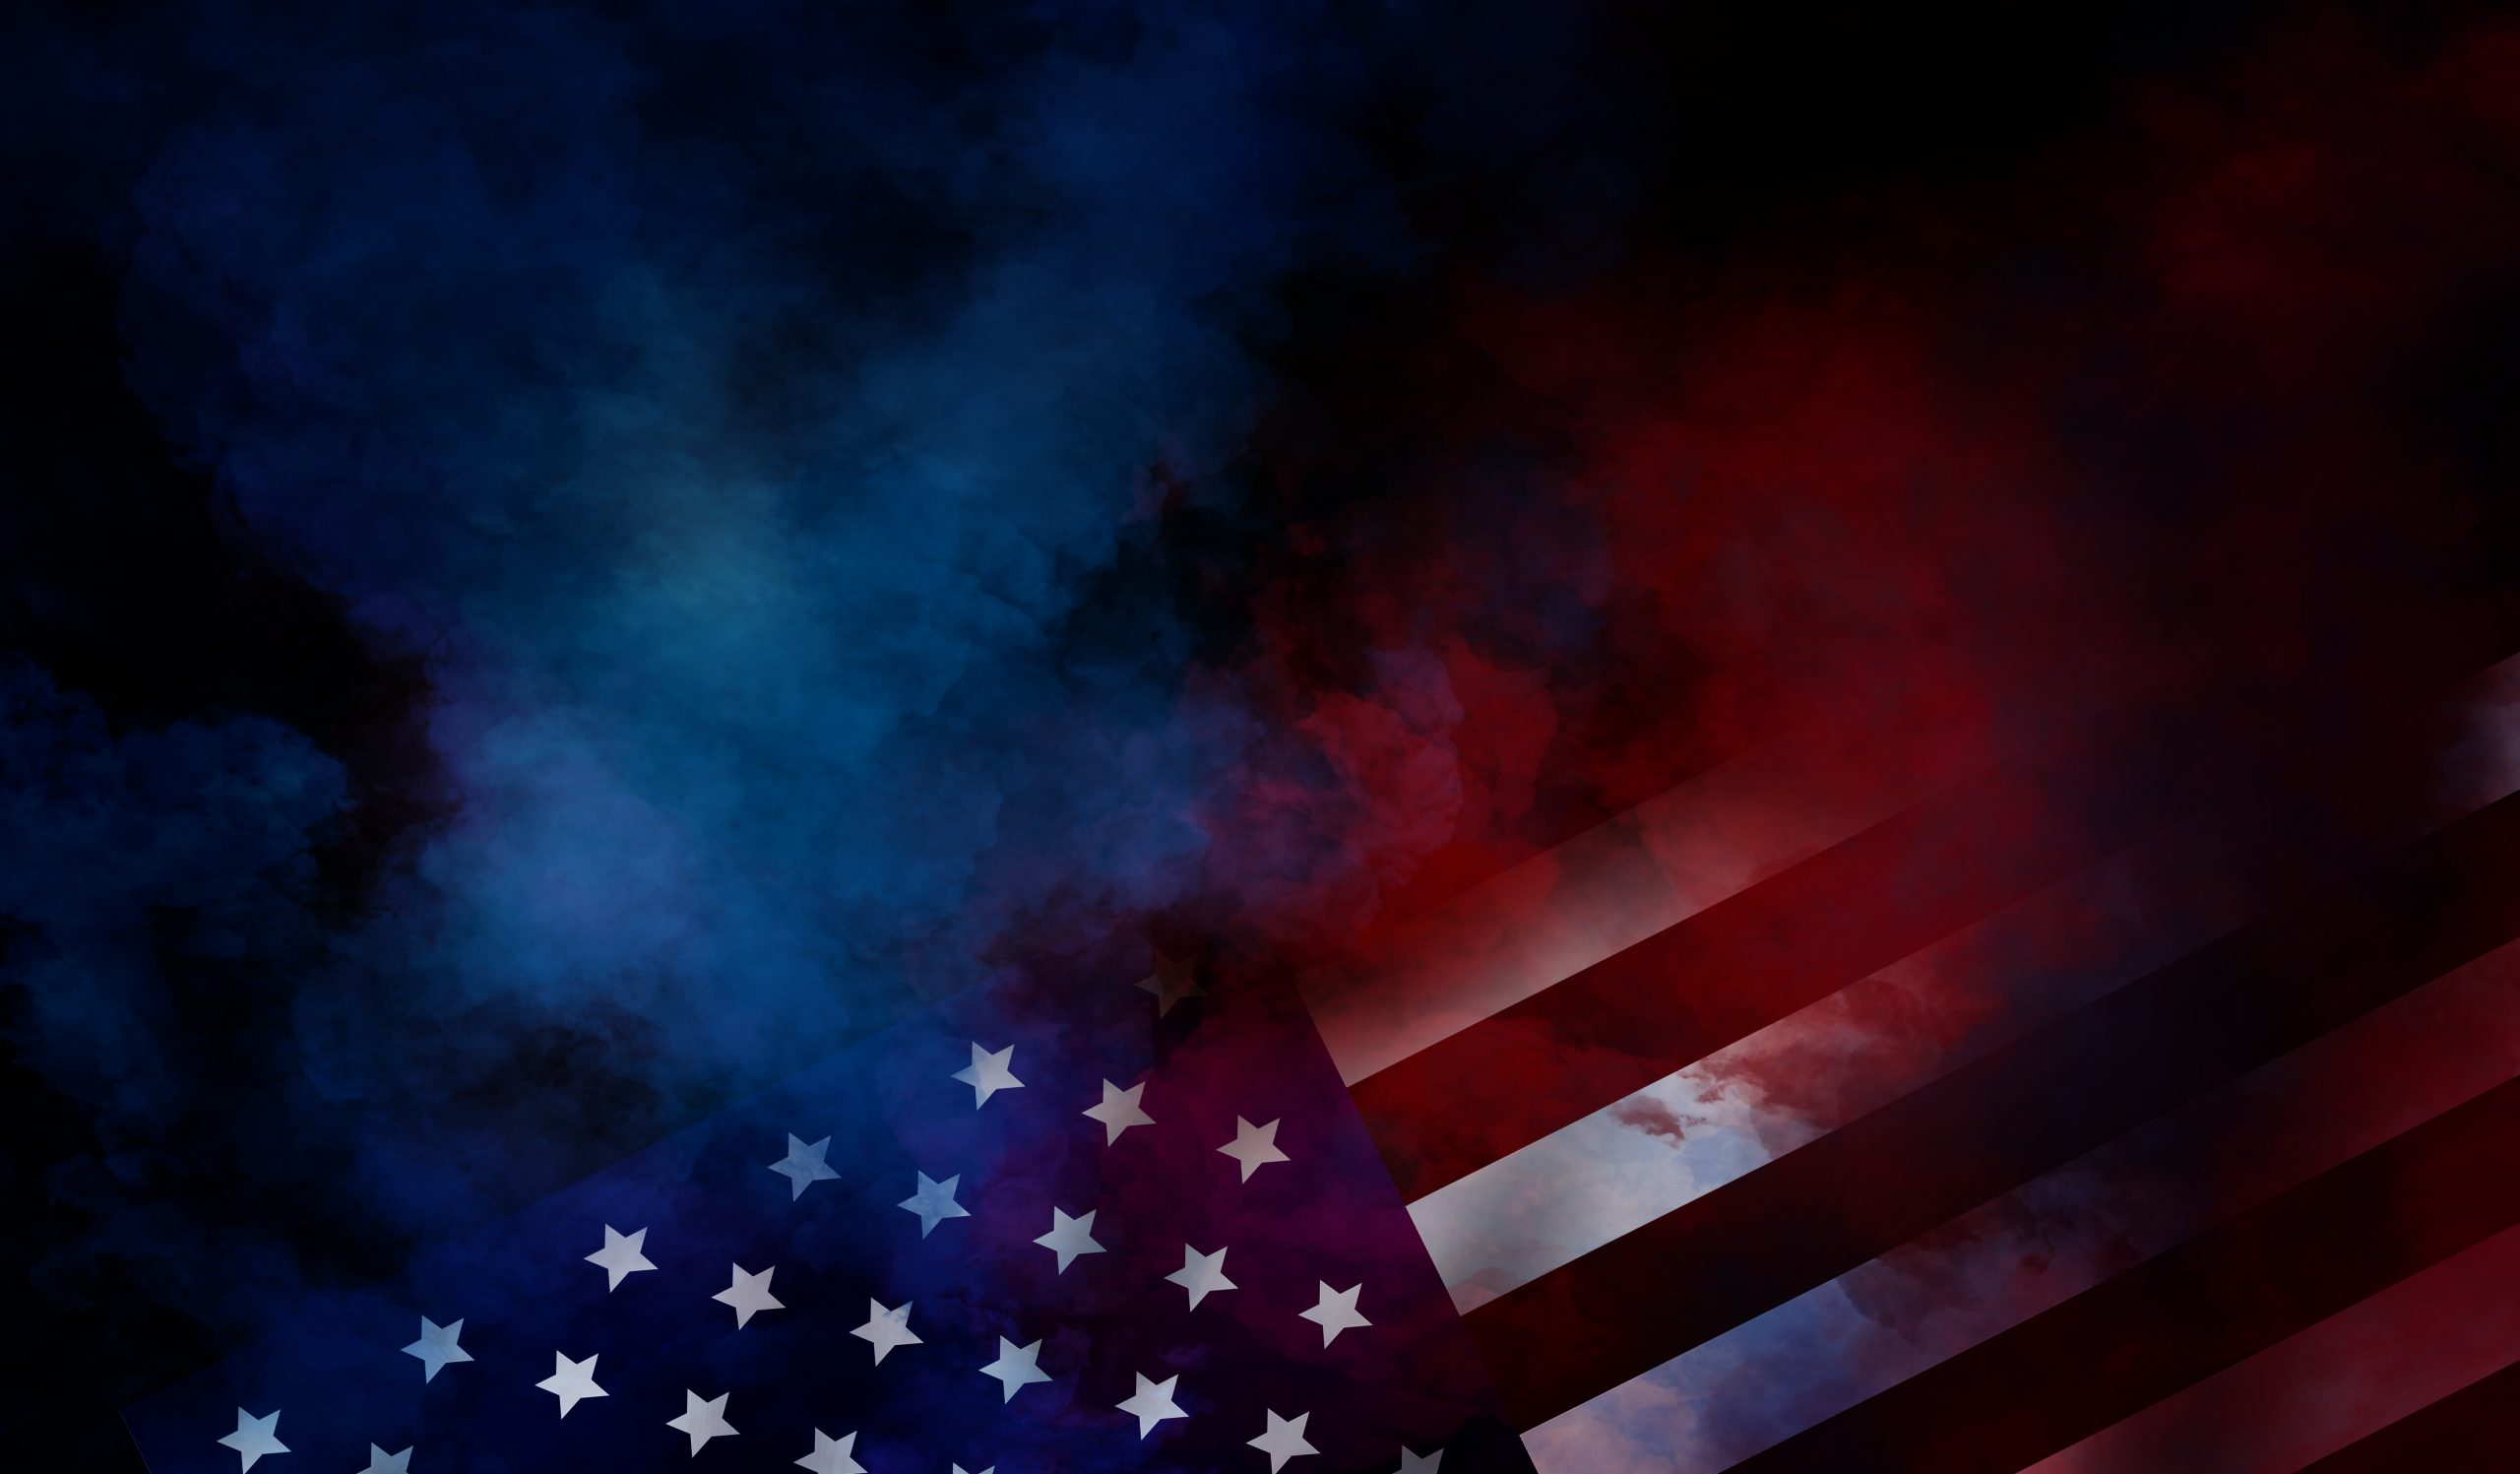 flag USA background design for independence, veterans, labor, memorial day. colorful smoke on black background